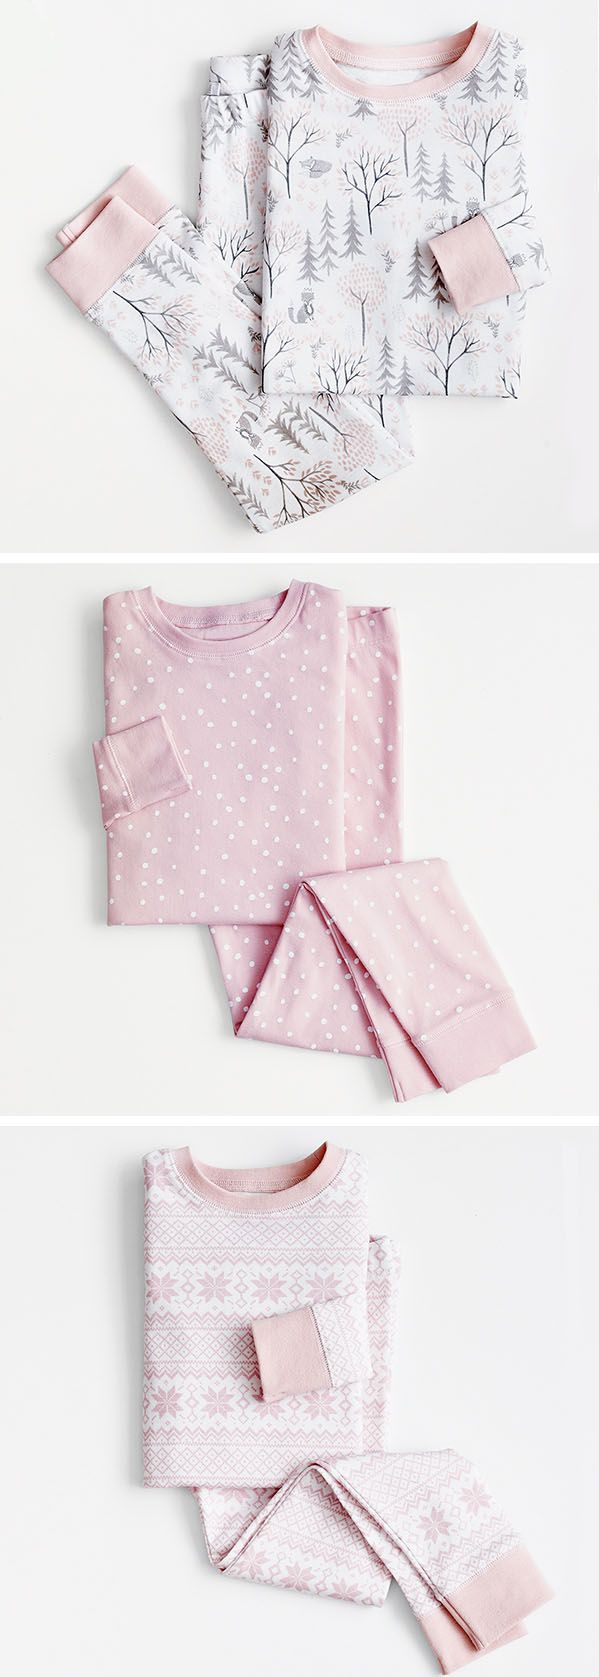 Festive wintertime pajamas perfect for little elves.